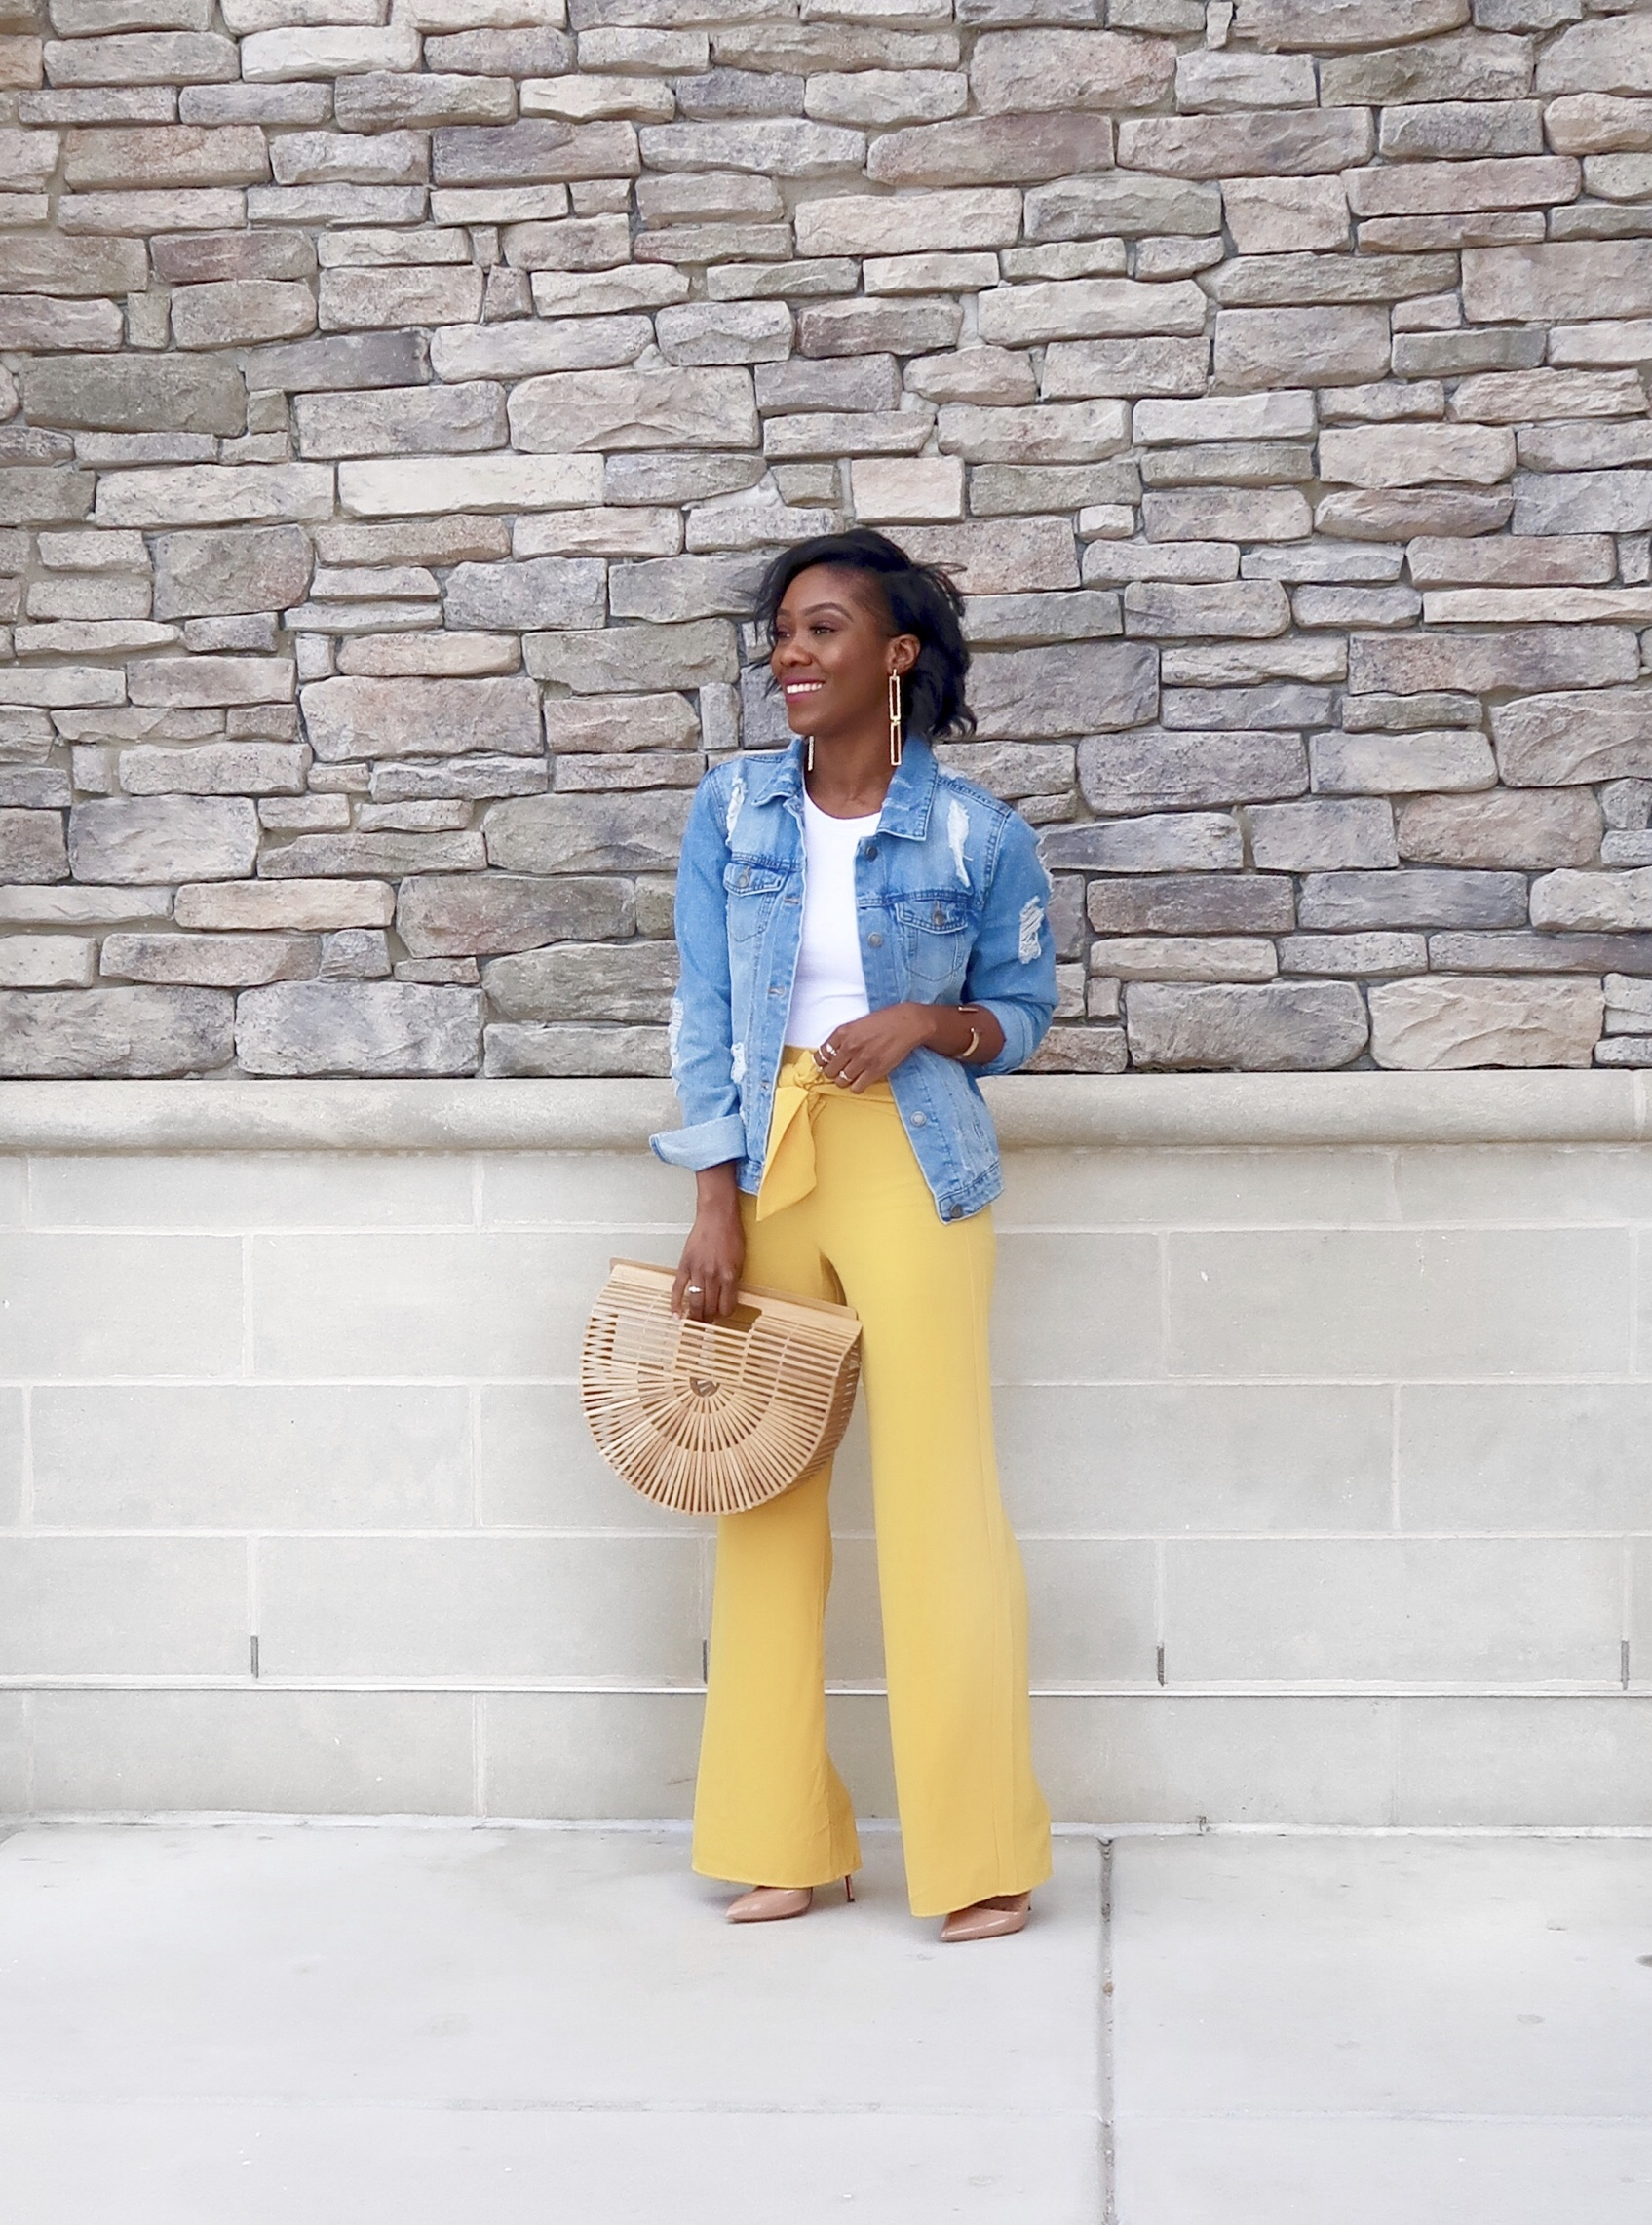 How to style denim jacket for work, You can recreate this style with pieces from your closet.